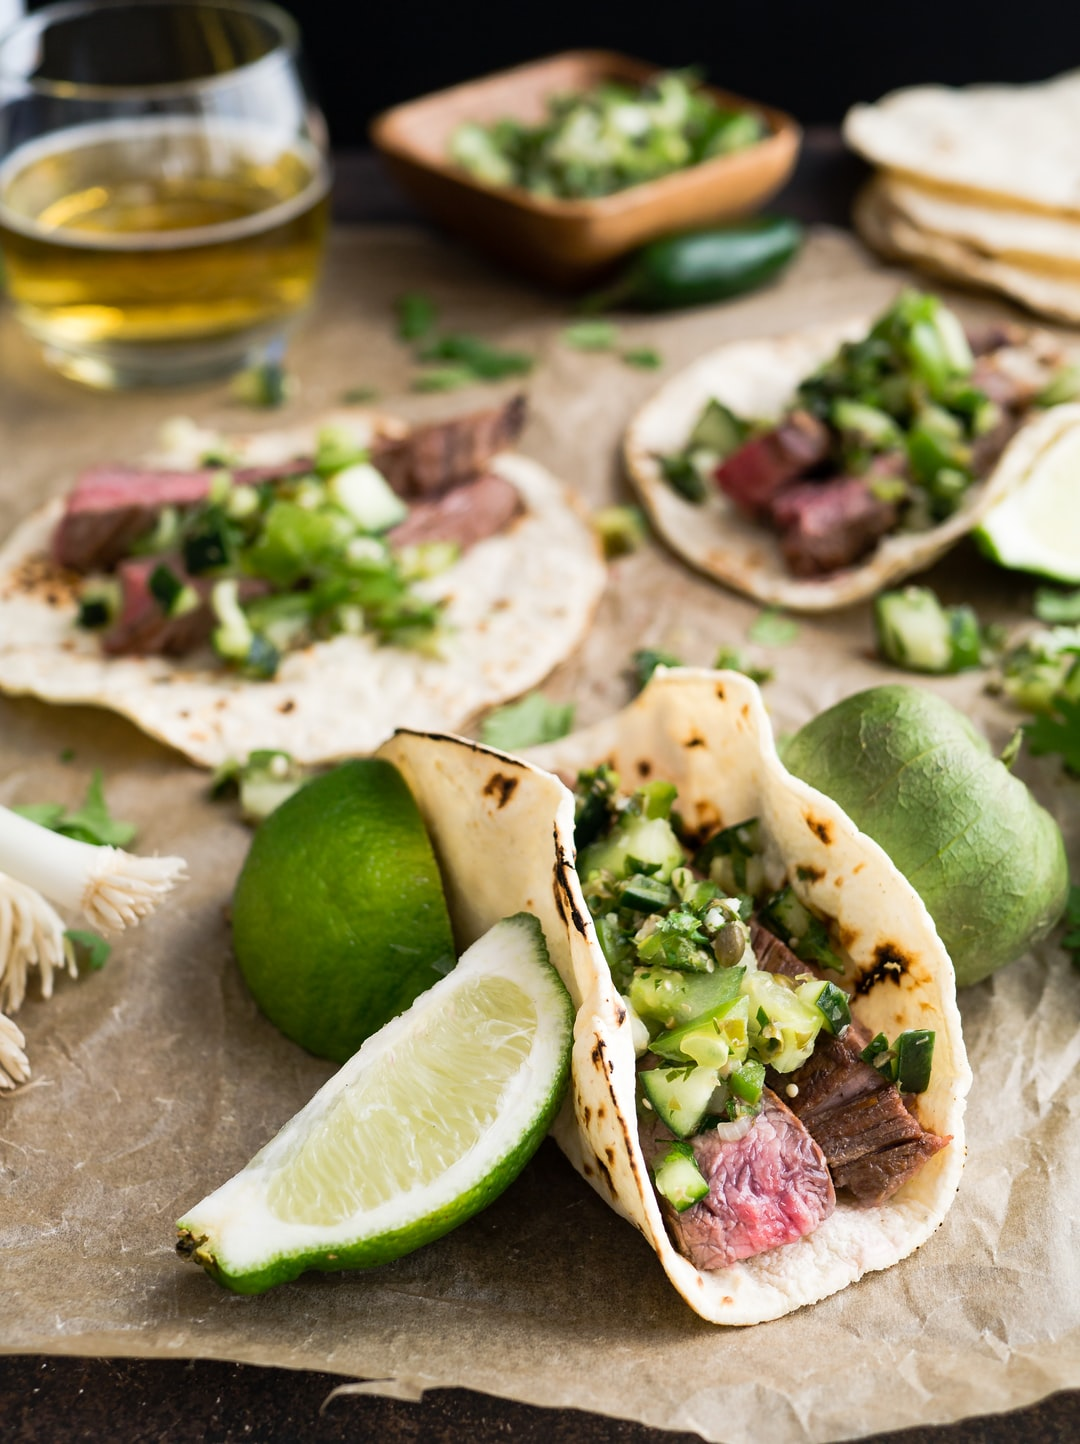 I love this recipe for margarita marinated flank steak tacos and I love the festive, loose atmosphere of this photo. It makes me feel like I'm at a friendly, slightly chaotic party celebrating with friends on a warm evening. Dancing is bound to follow the meal.